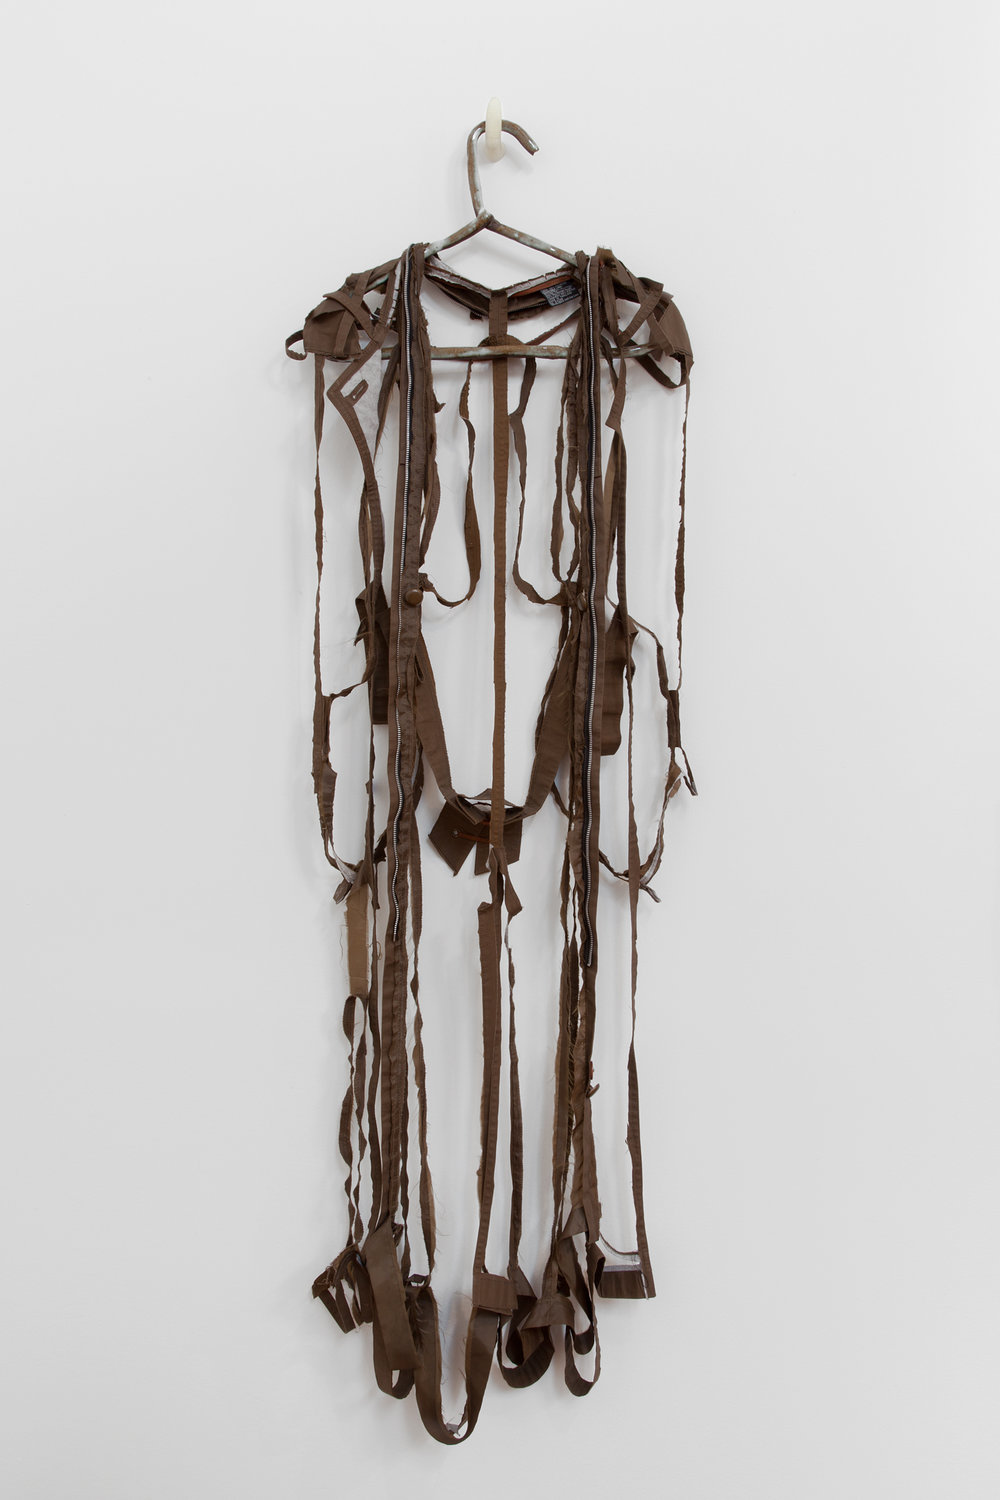 "ANNA SEW HOY   chocolate/chocolat , fired stoneware, trench coat and resin finger hook, 58.5"" x 18"" x 3.5"", 2012"